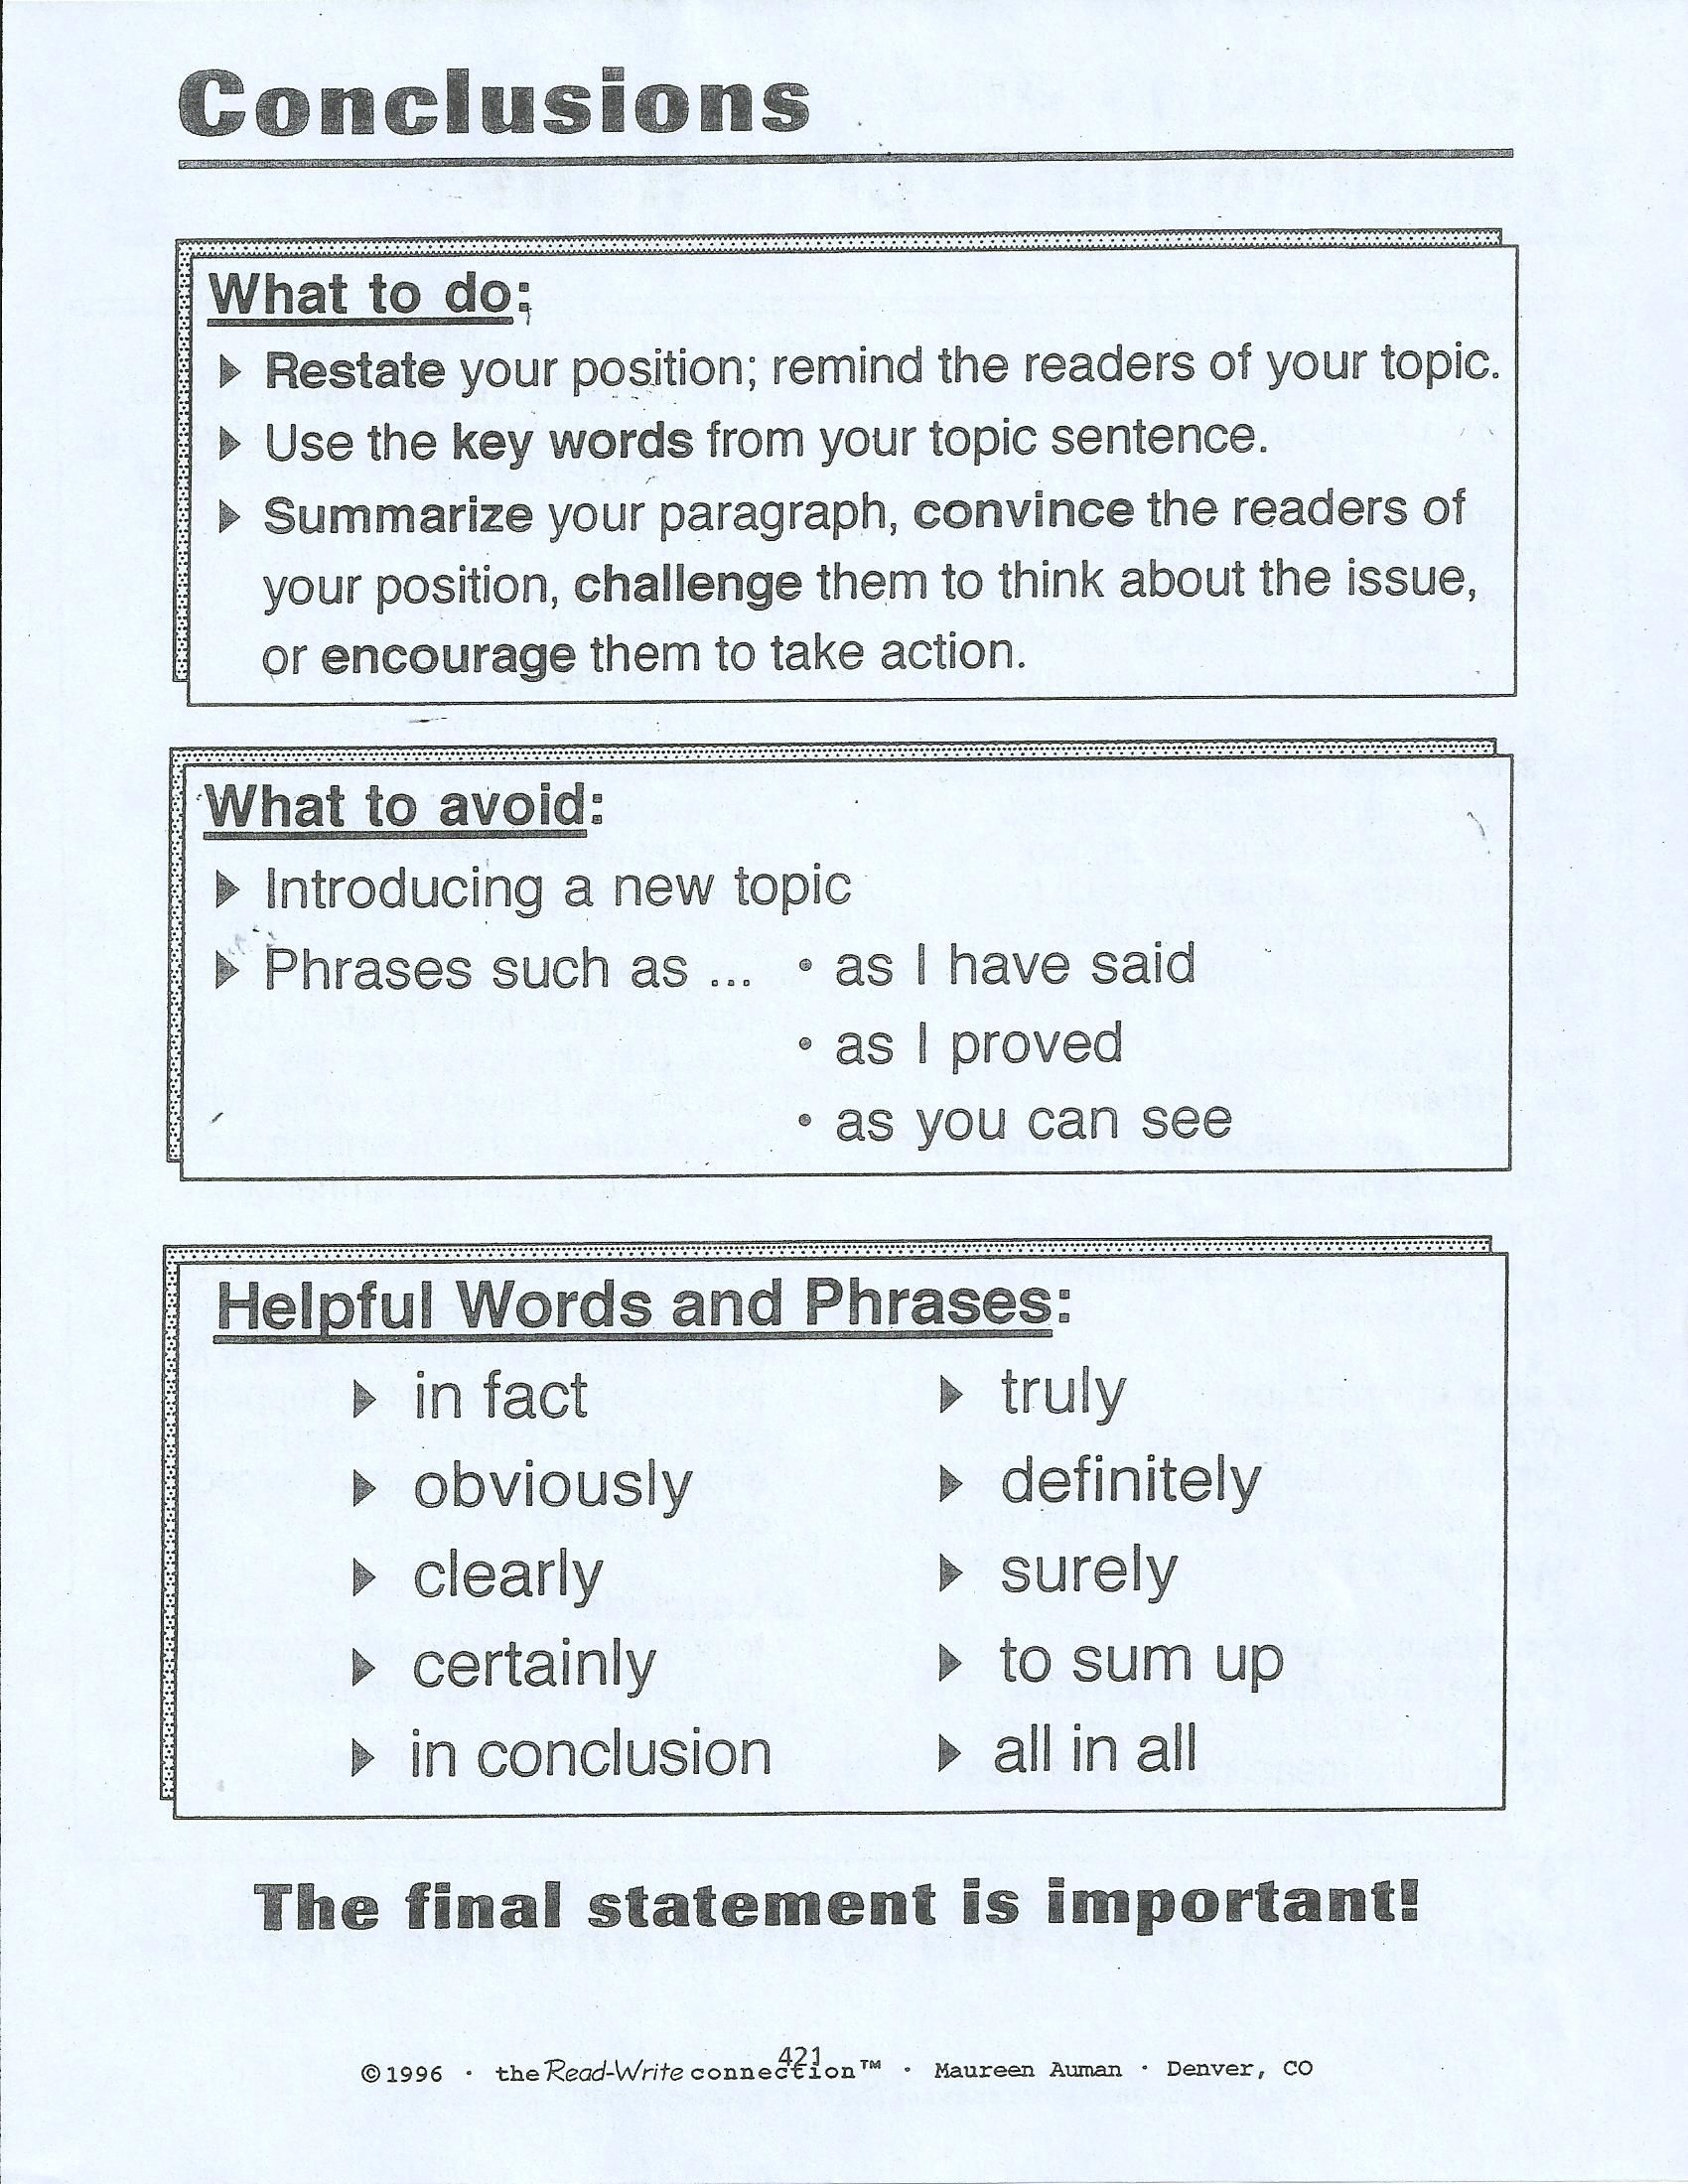 opinion article examples for kids persuasive essay writing this summarizes what to do what to avoid and words that can help build up a strong conclusion